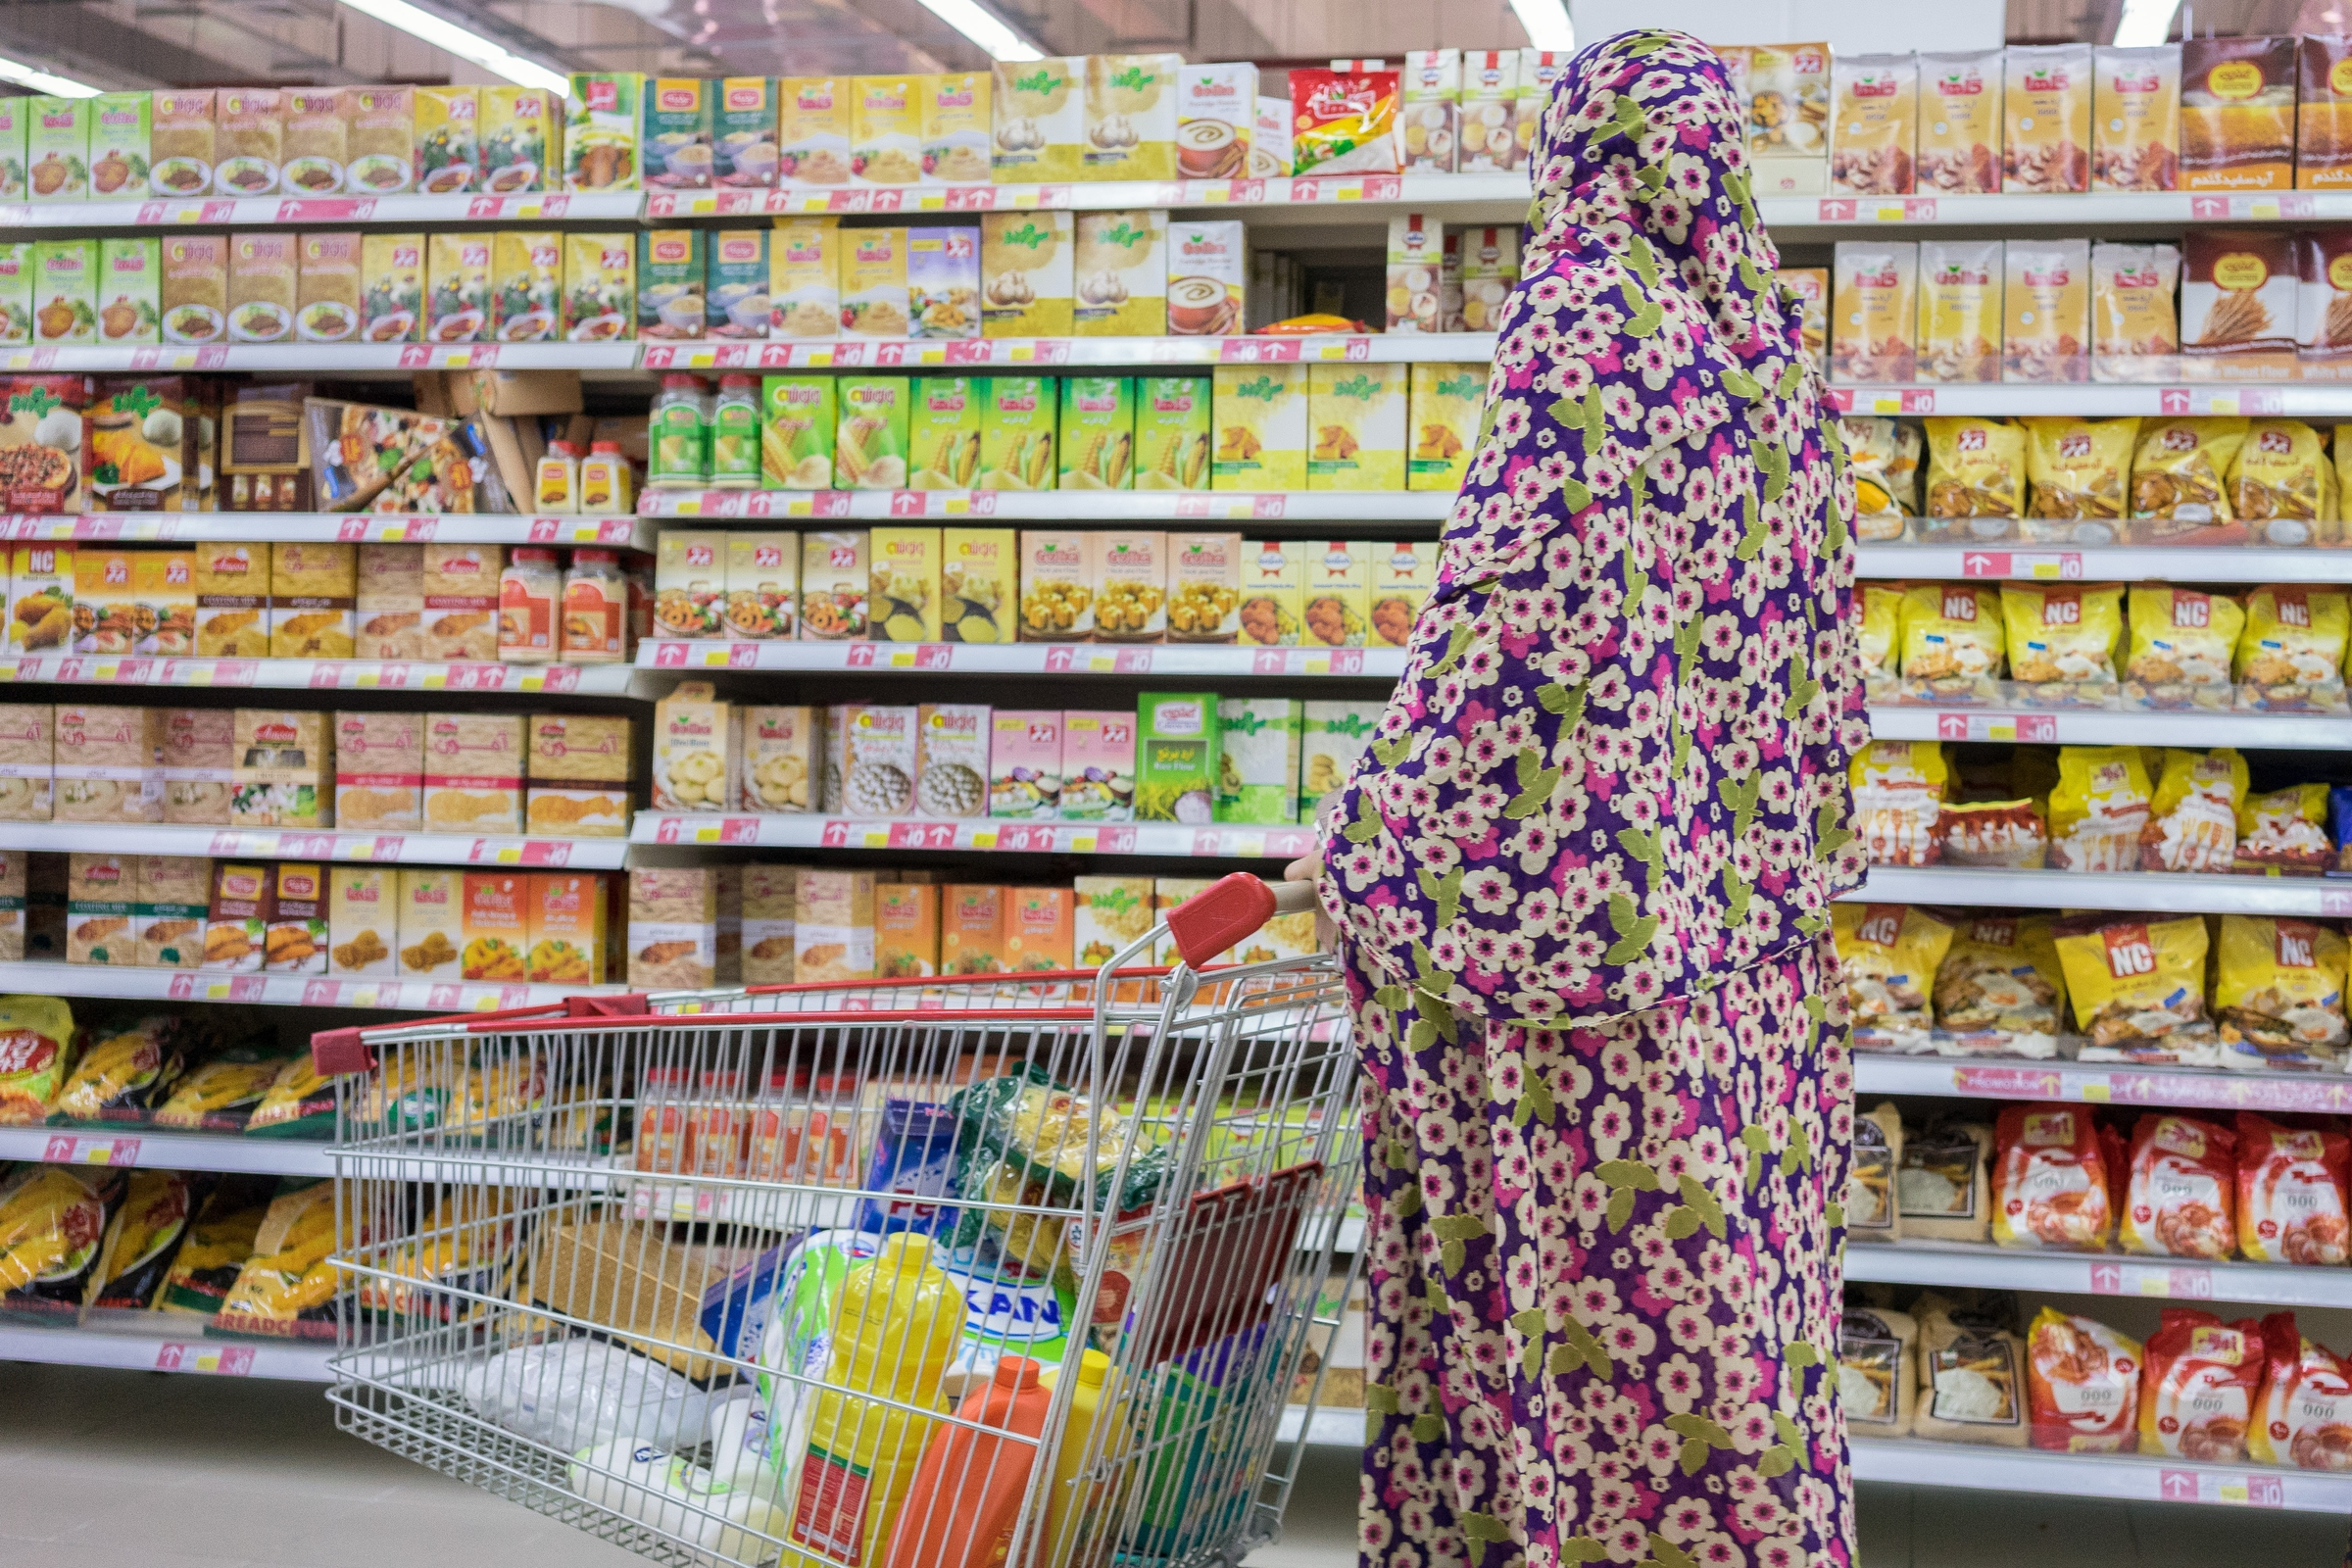 A woman shops at Hyperstar, a highly successful hypermarket brand introduced by French firm Carrefour in partnership with Majid al Futtaim, a Dubai-based conglomerate. Hyperstar locations typically anchor larger mall developments, in this case the Persian Gulf Complex, a huge mall in the outskirts of Shiraz.